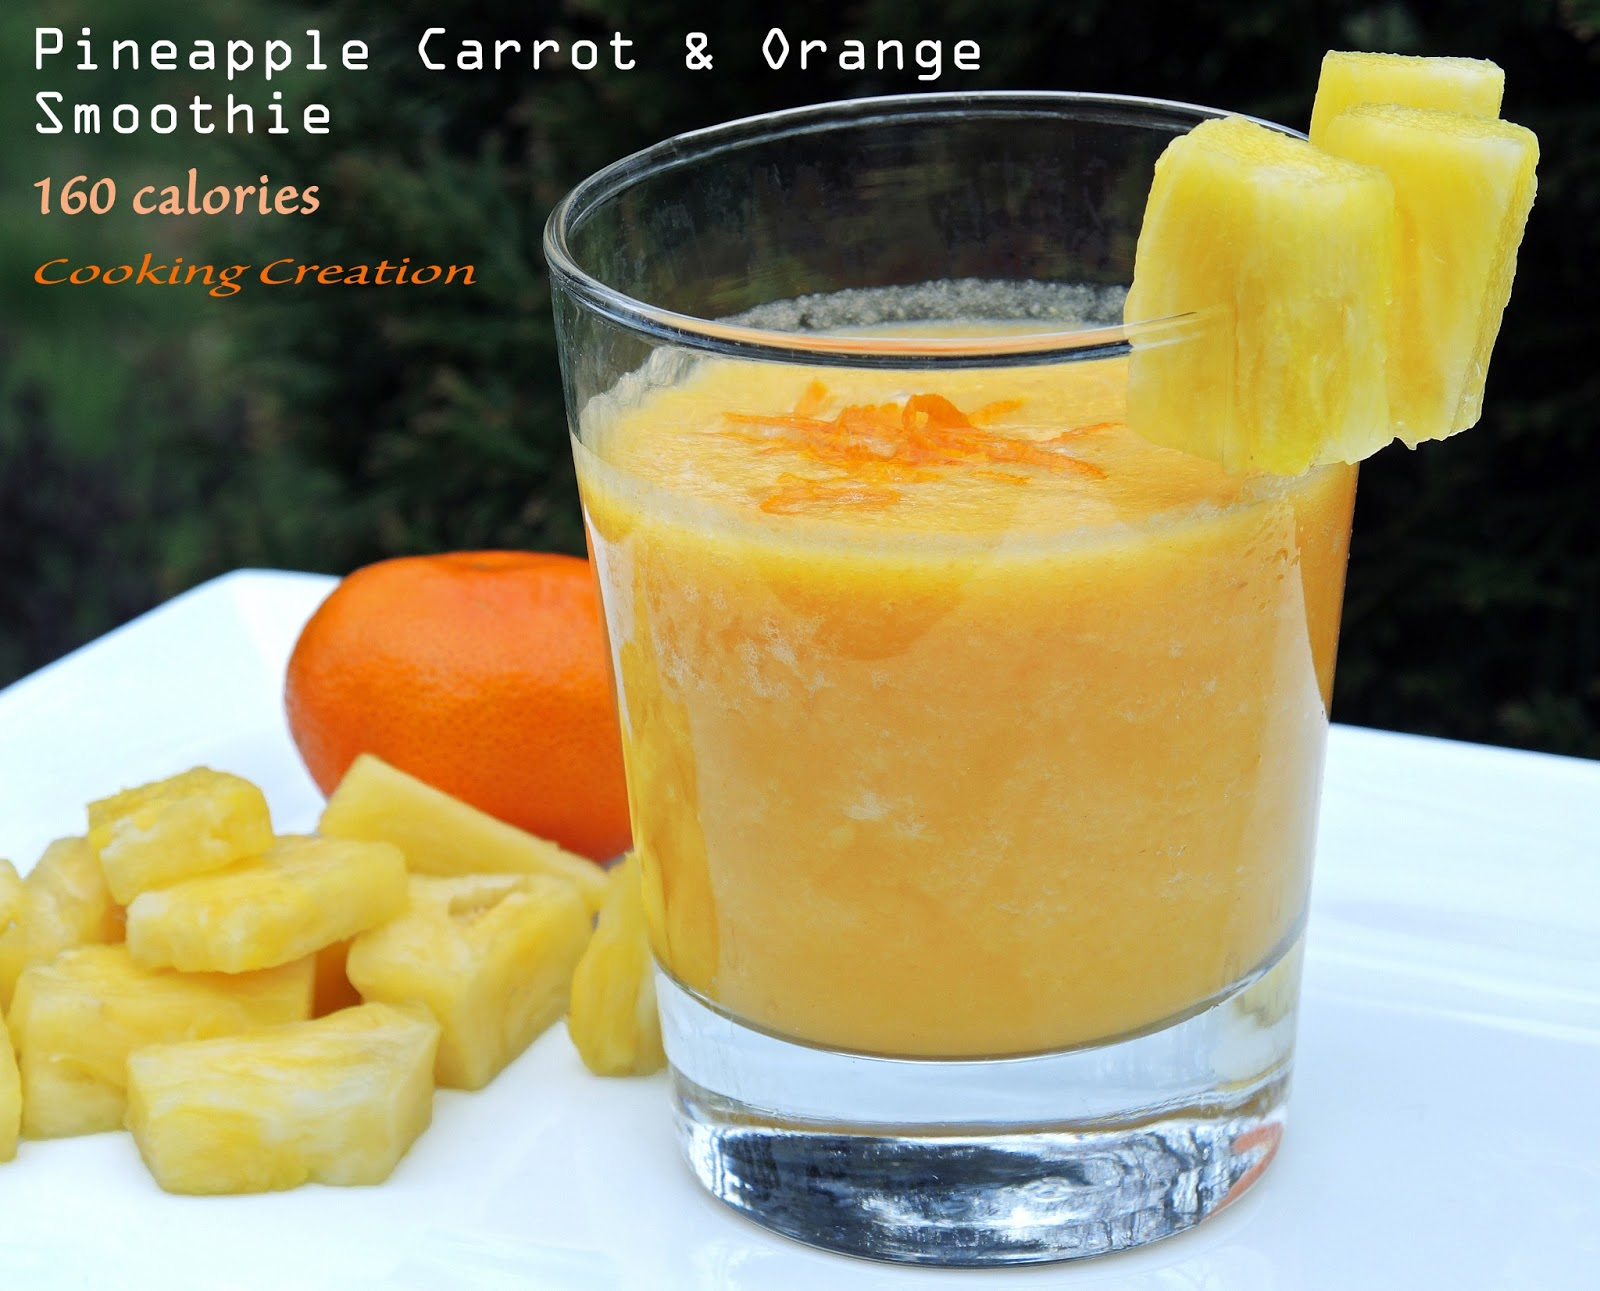 orange pineapple carrot juice say hello carrot pineapple orange juice ...